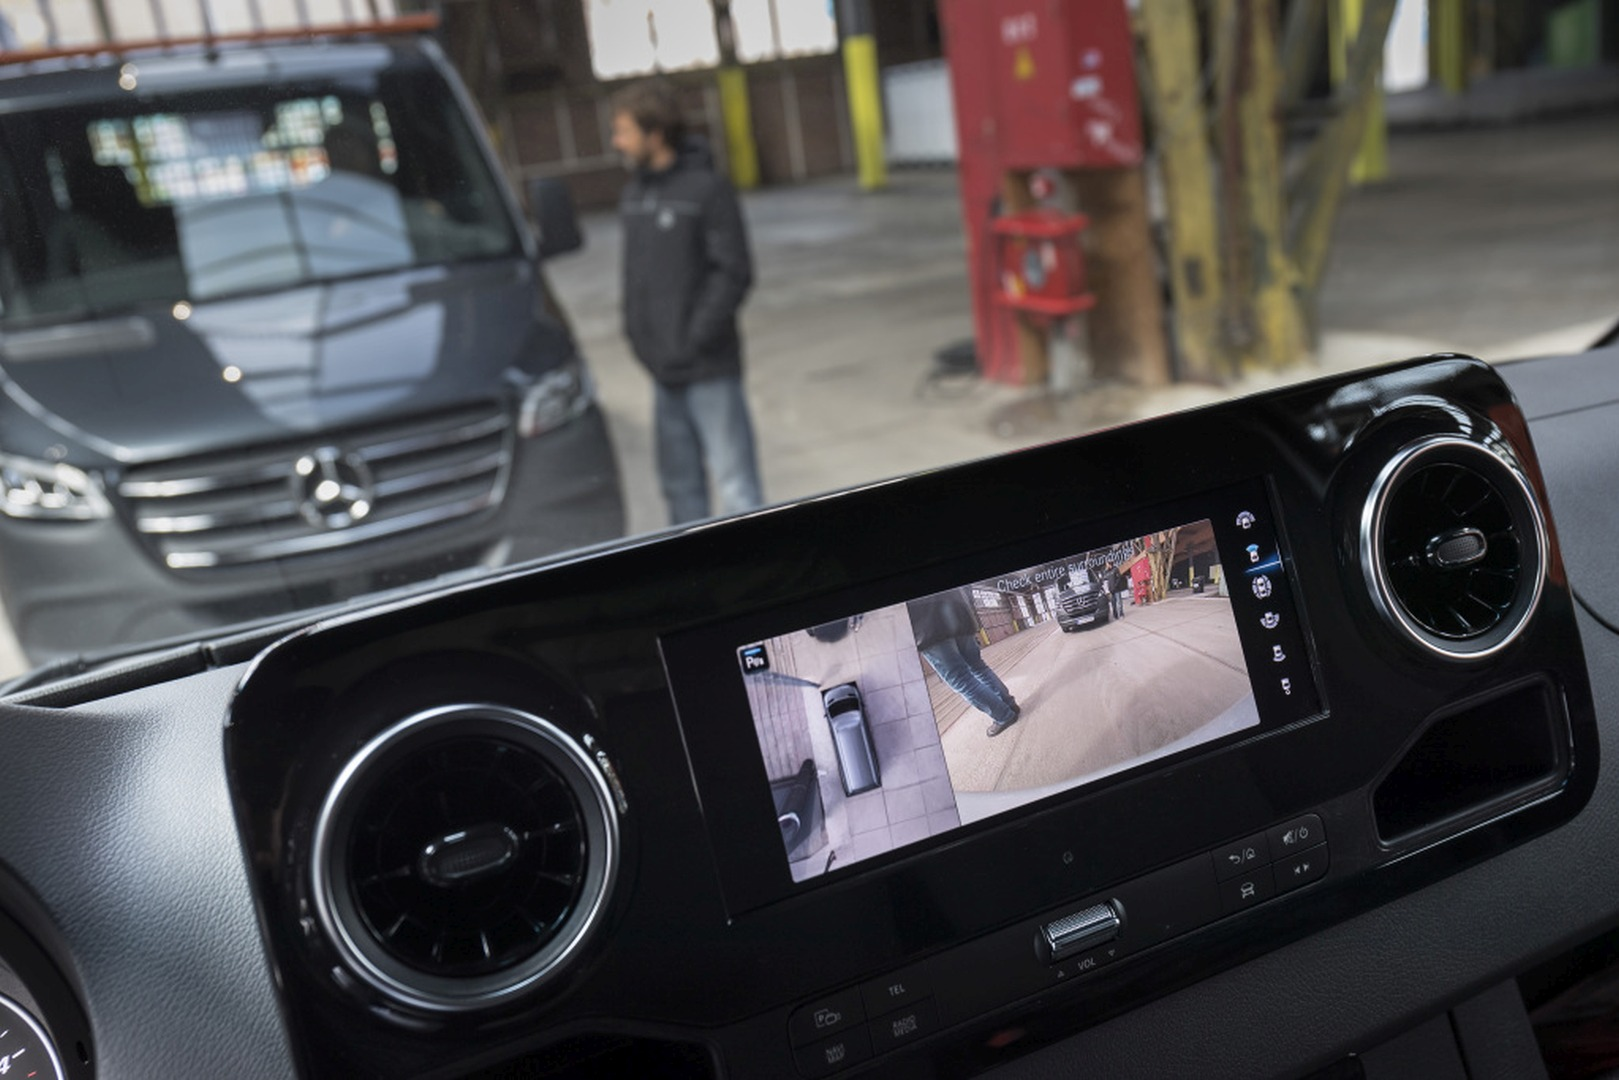 Pressefahrvorstellung Mercedes-Benz Sprinter, Amsterdam 2018Press test drive Mercedes-Benz Sprinter, Amsterdam 2018